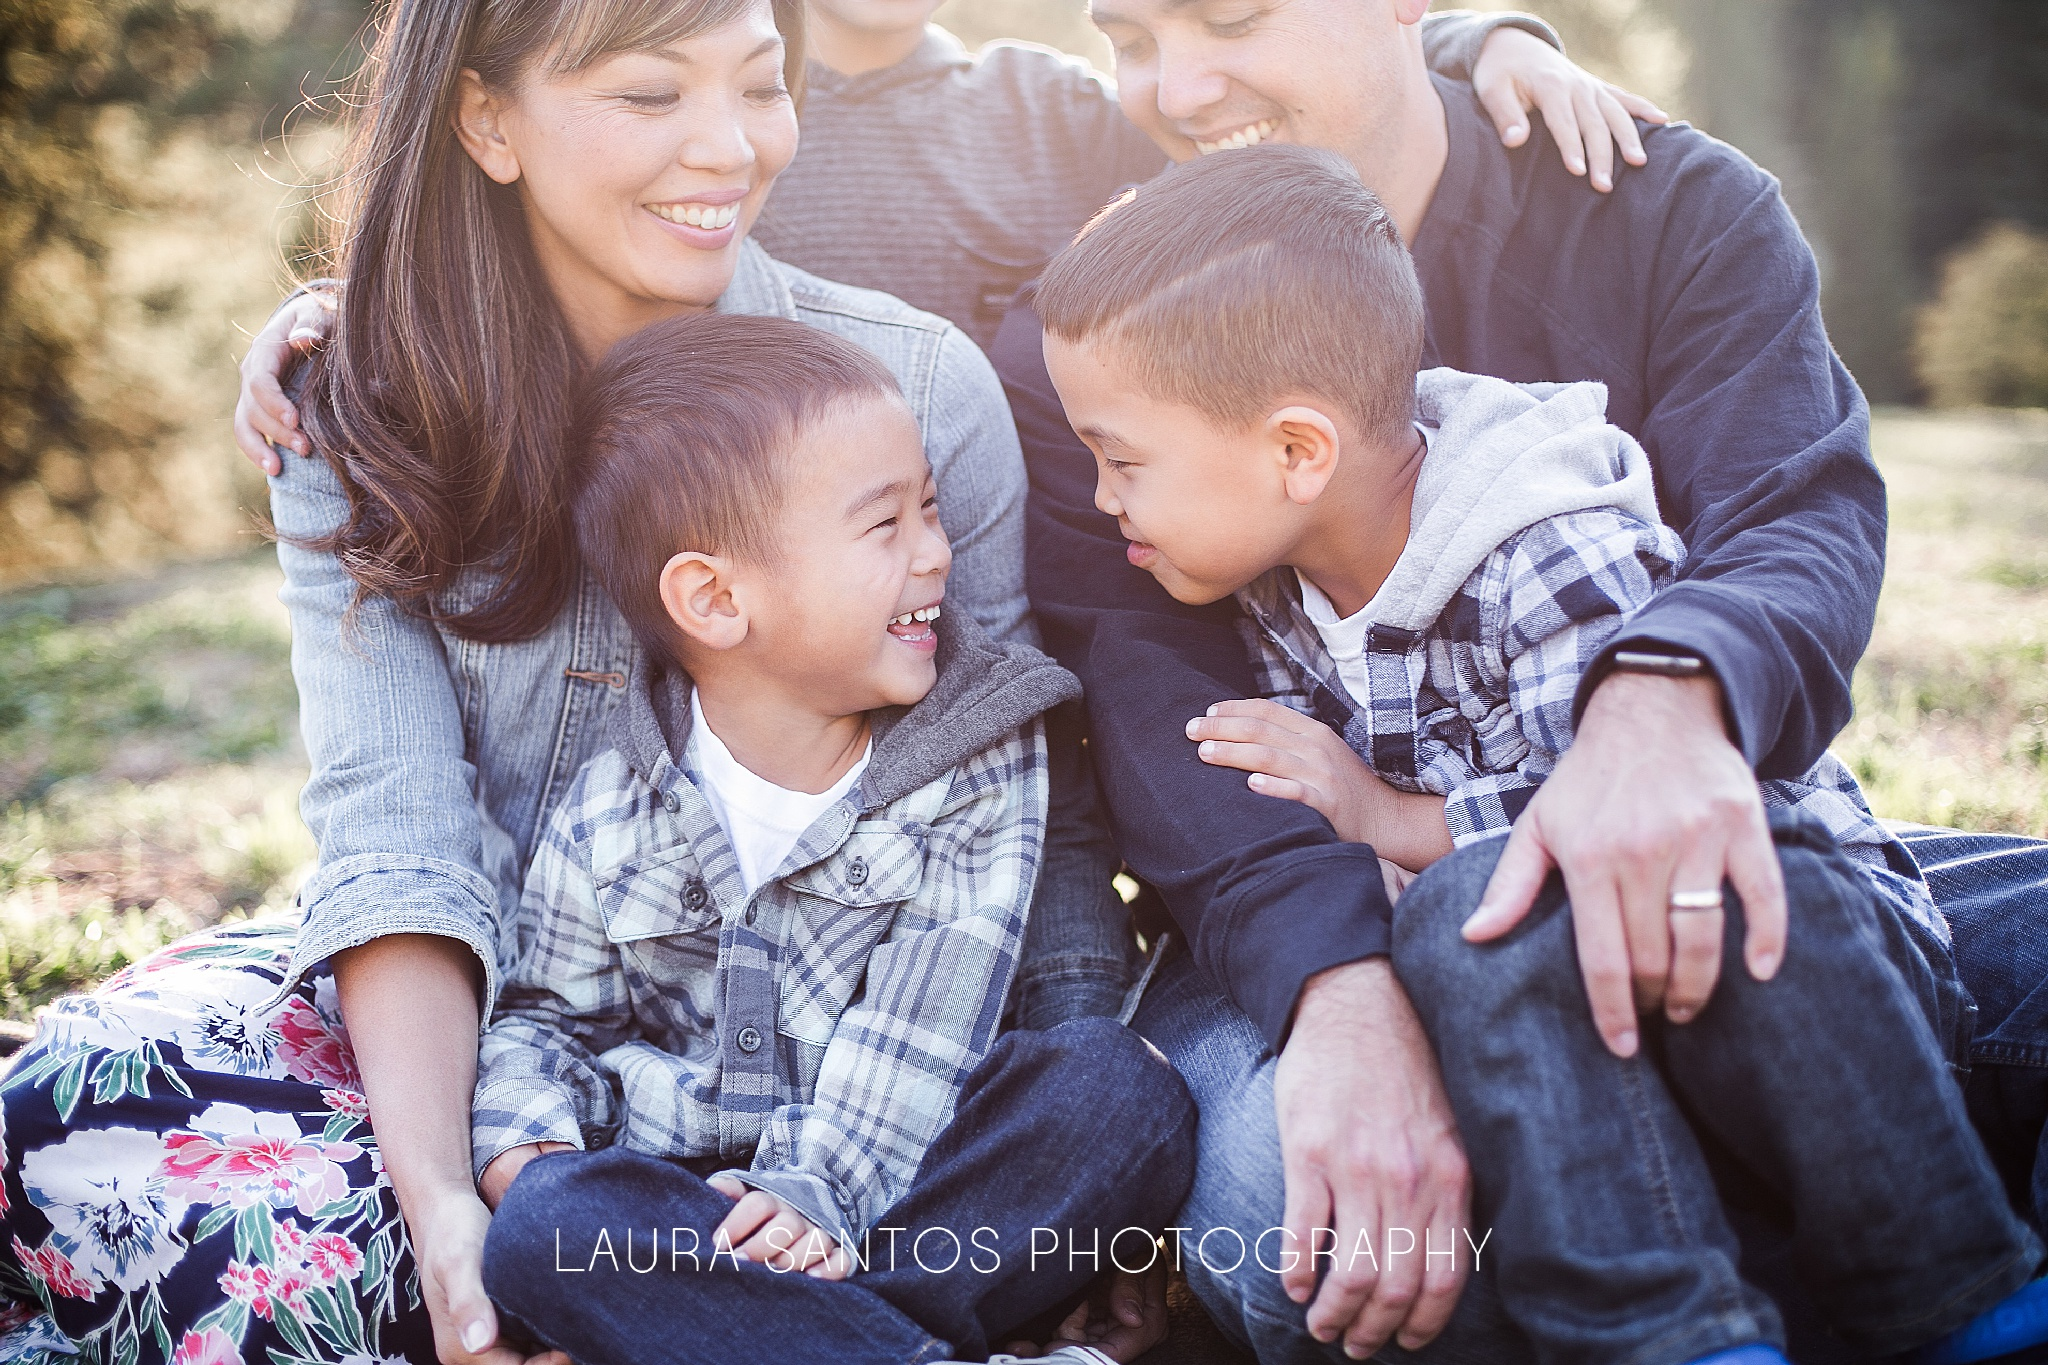 Laura Santos Photography Portland Oregon Family Photographer_0756.jpg